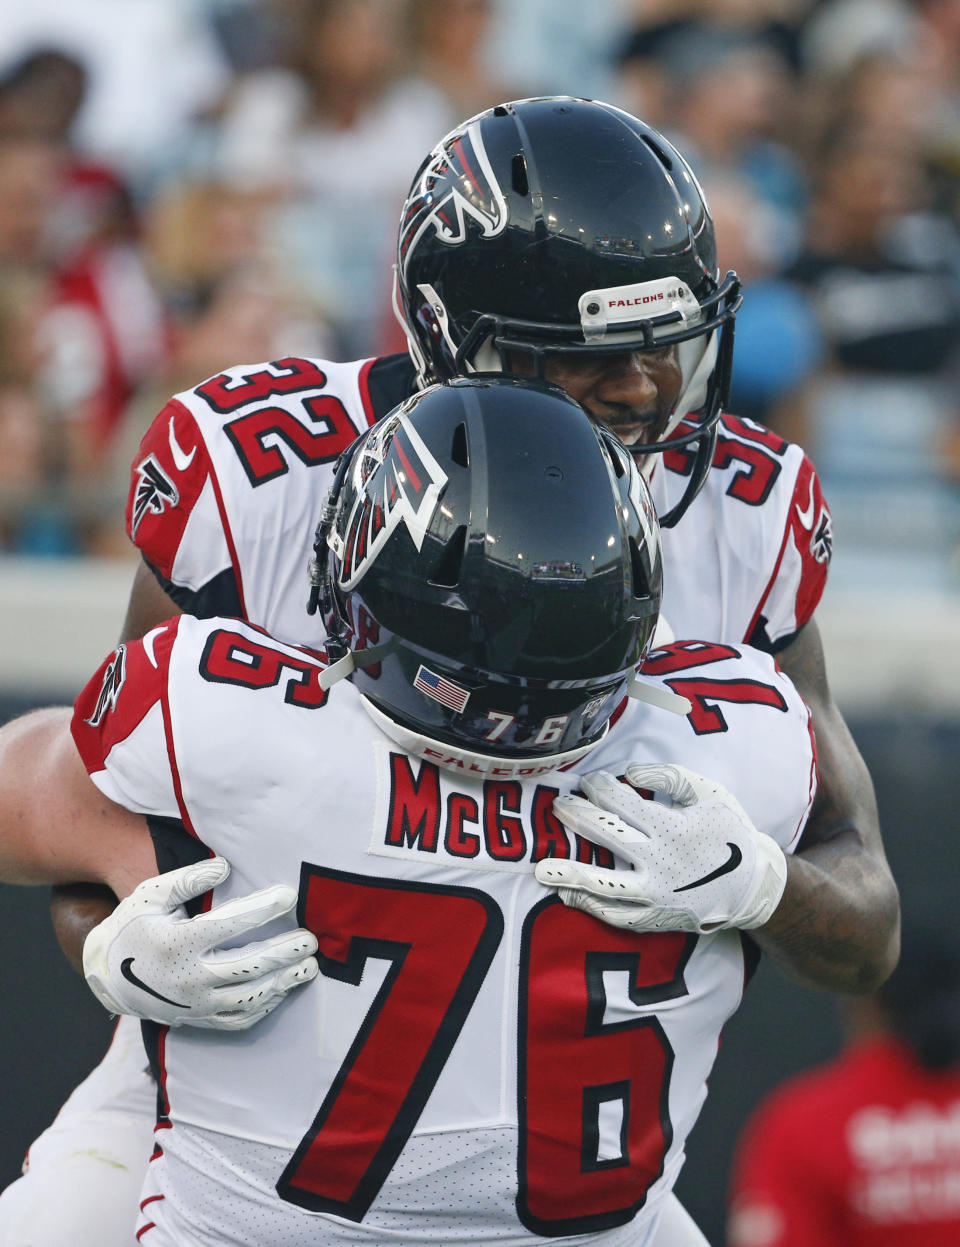 Atlanta Falcons running back Qadree Ollison (32) celebrates his 9-yard touchdown run against the Jacksonville Jaguars with offensive tackle Kaleb McGary (76) during the first half of an NFL preseason football game Thursday, Aug. 29, 2019, in Jacksonville, Fla. (AP Photo/Stephen B. Morton)